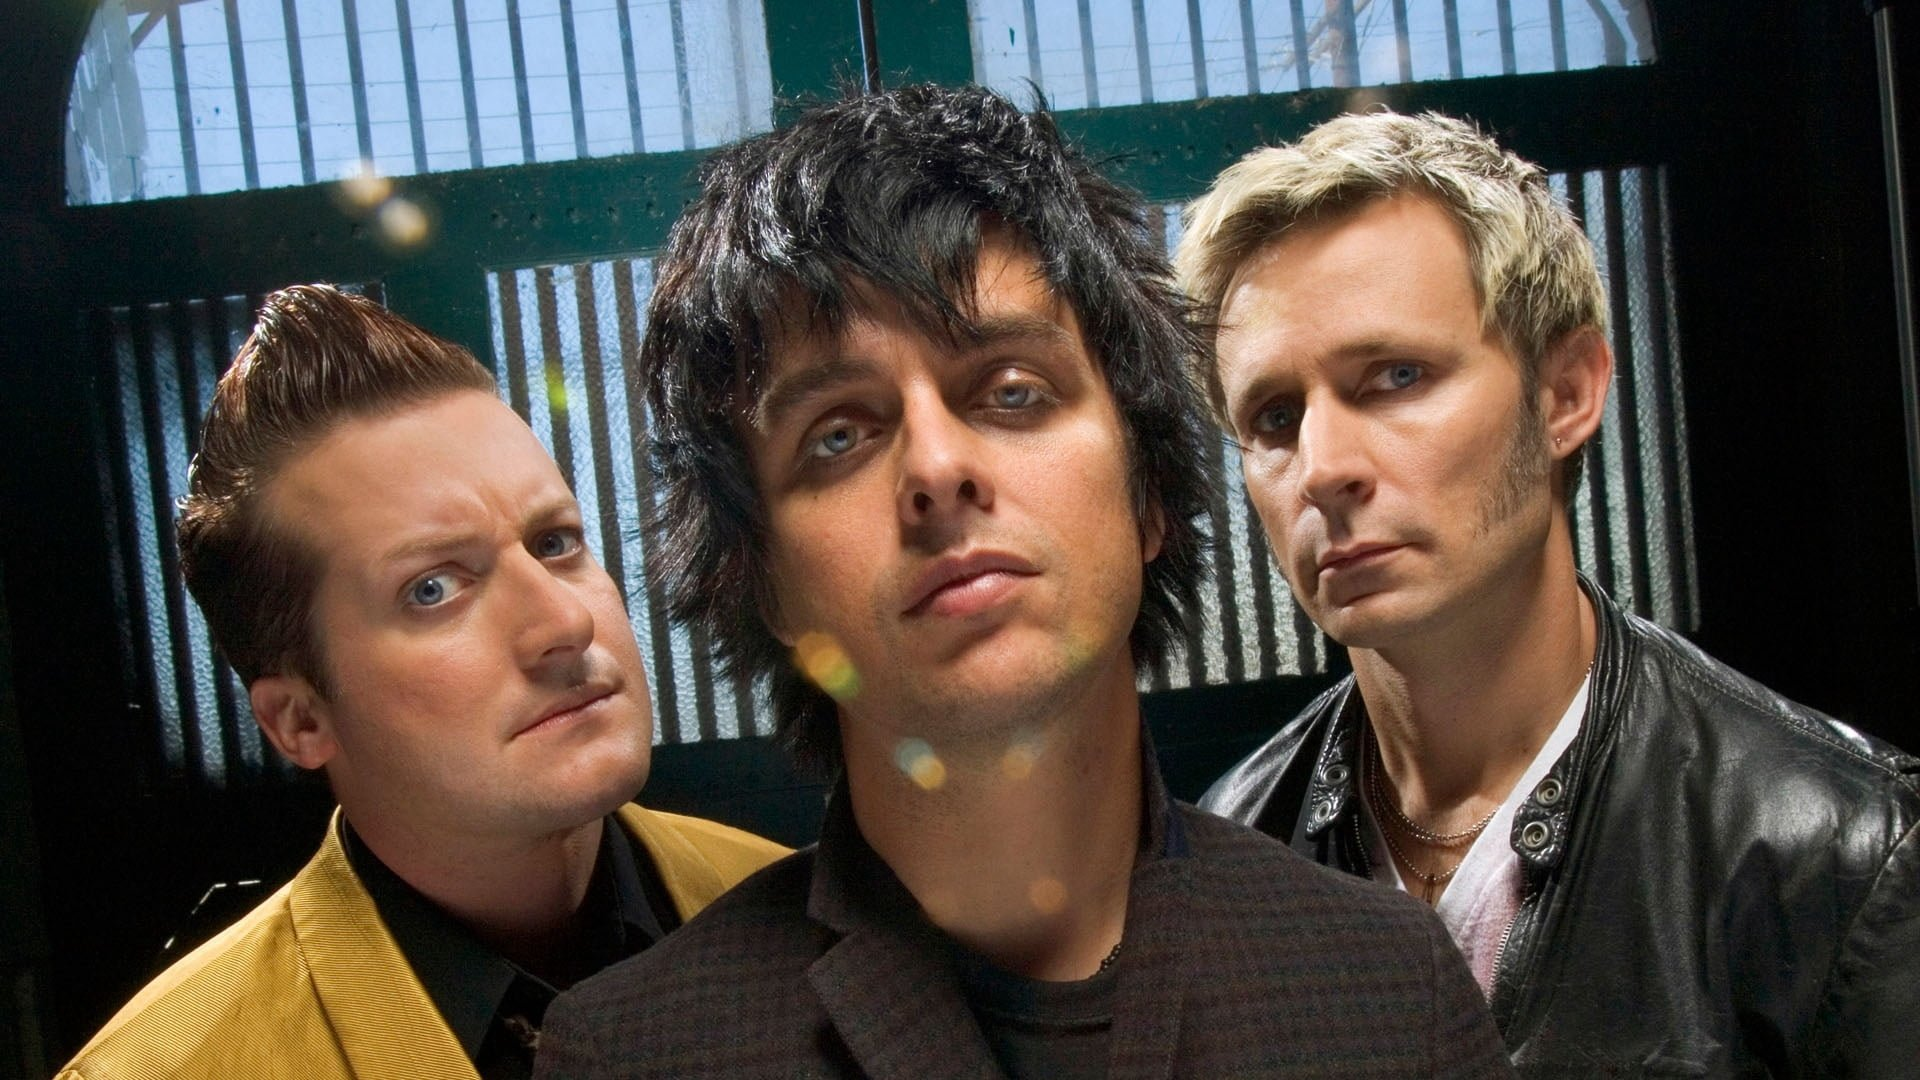 Green Day Wallpaper Image